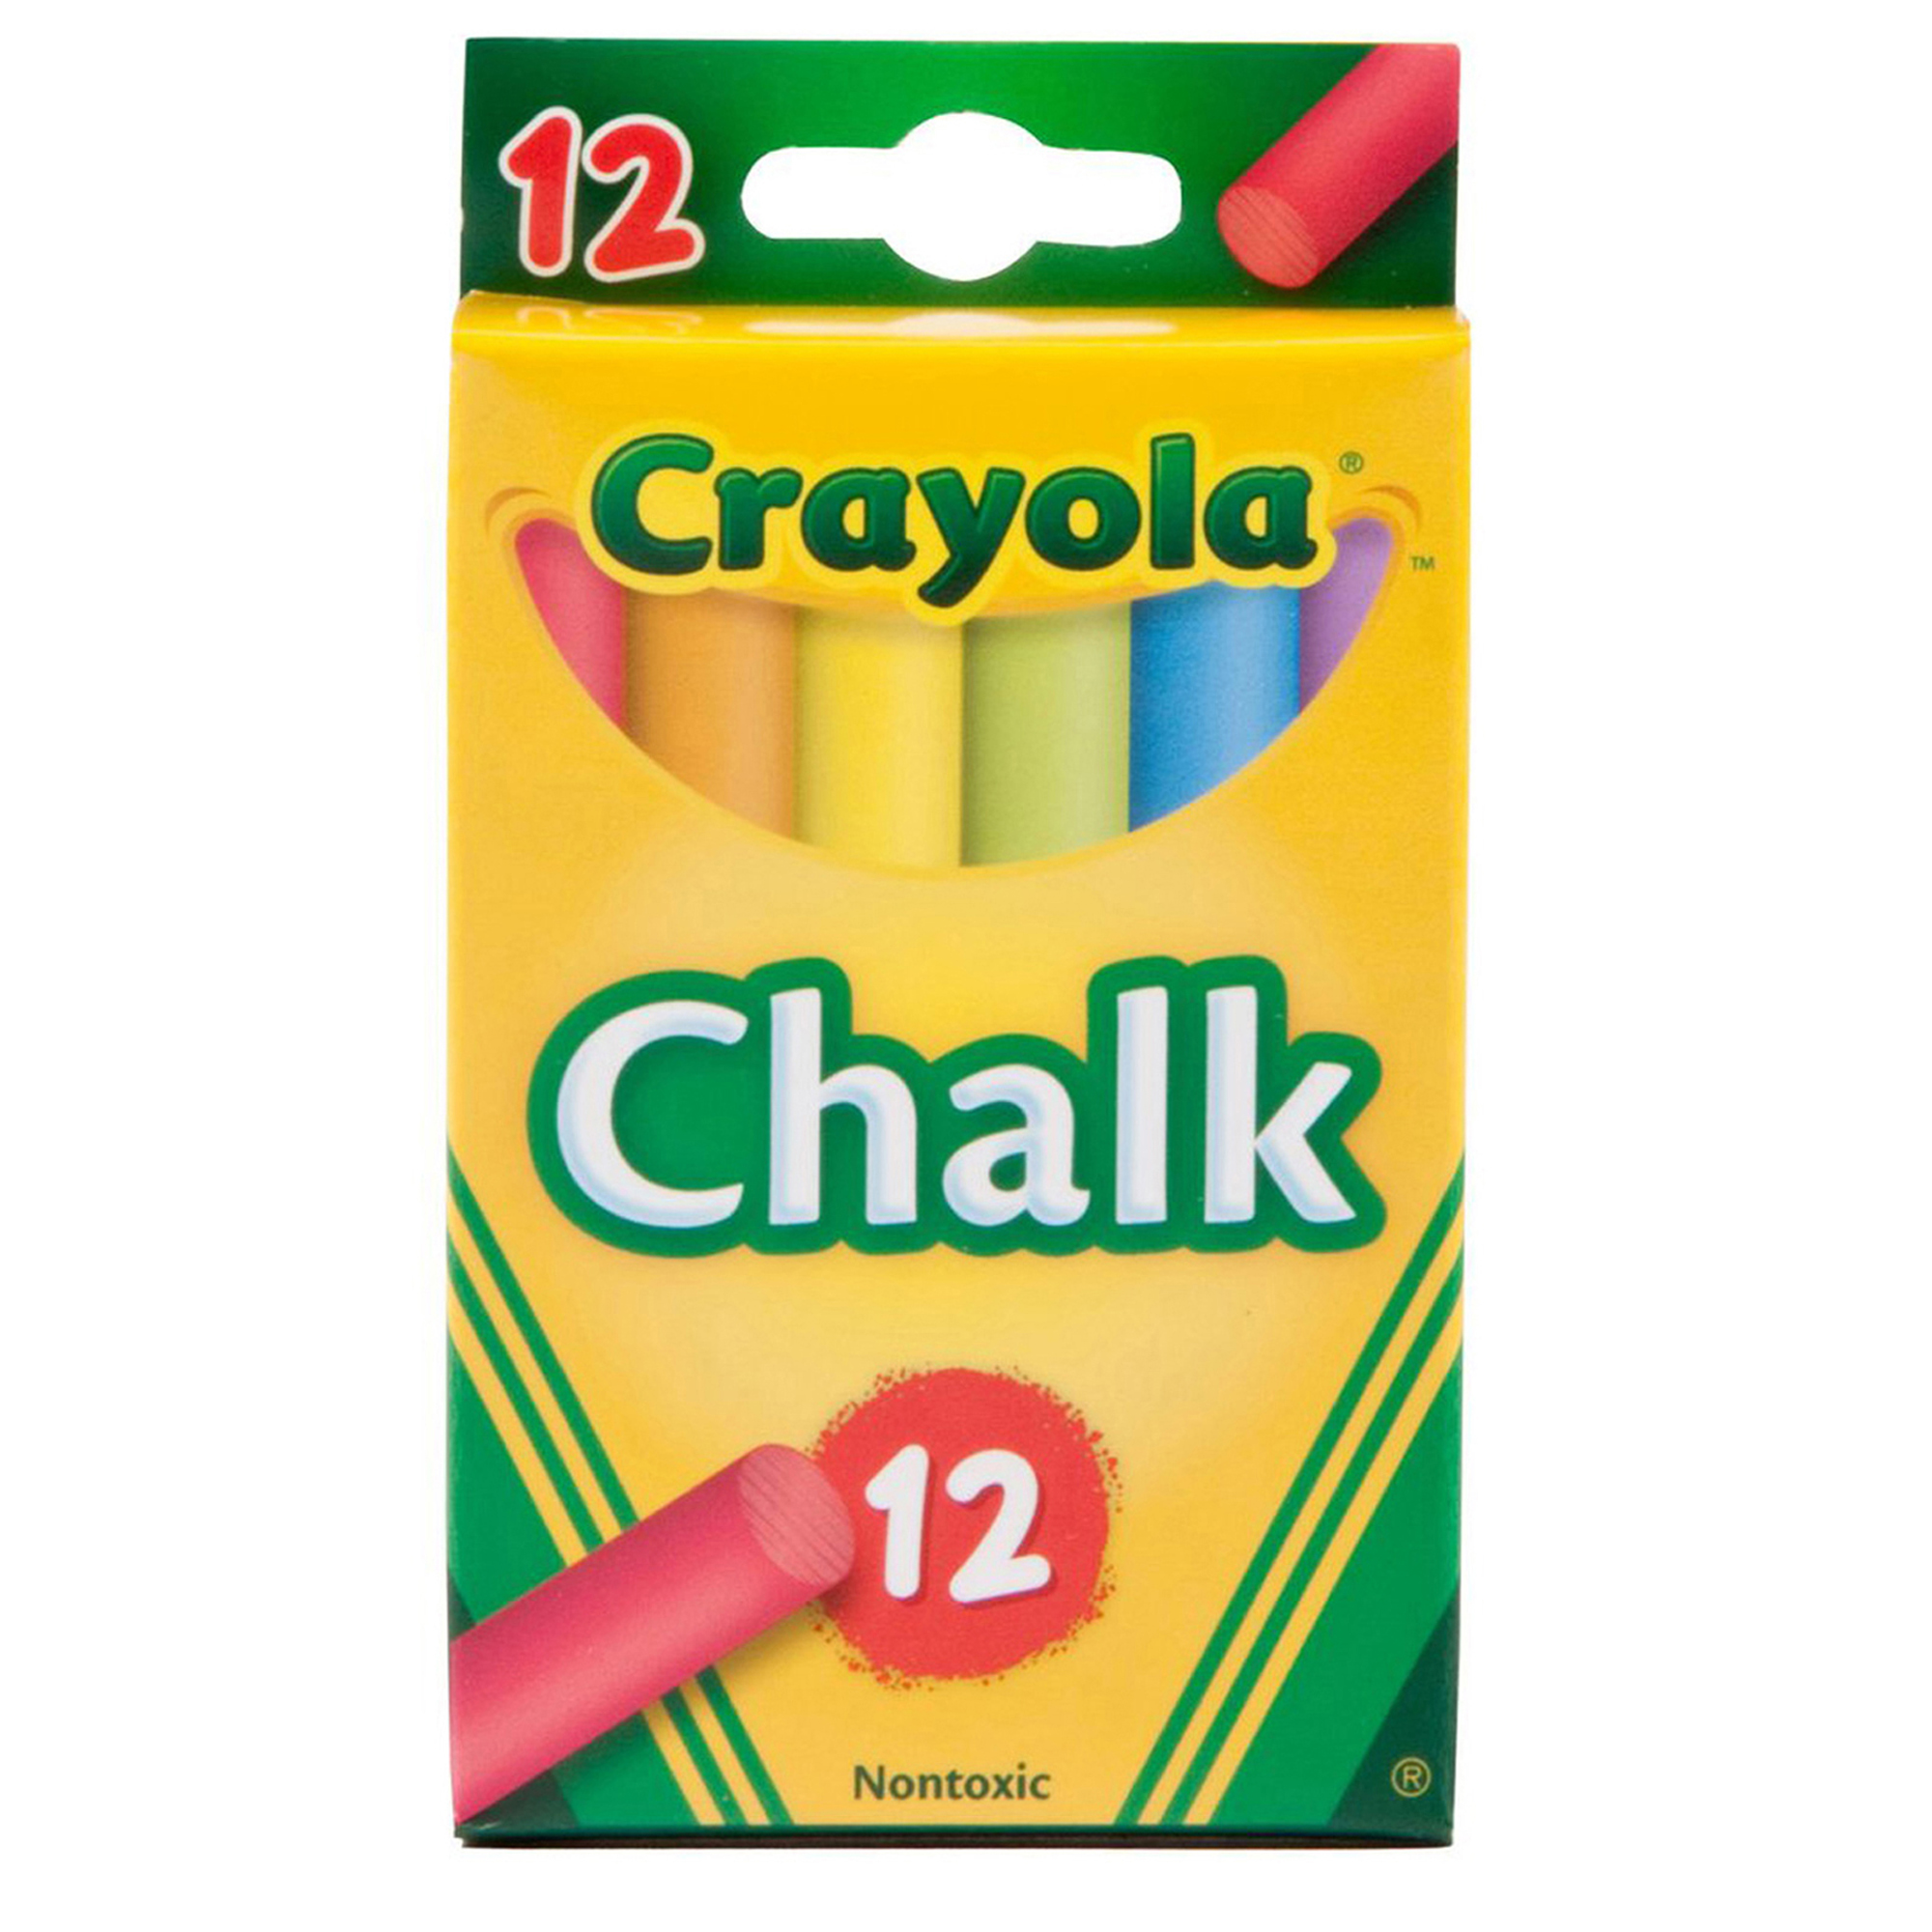 Crayola® Colored Chalk, 12 Per Pack, 36 Packs